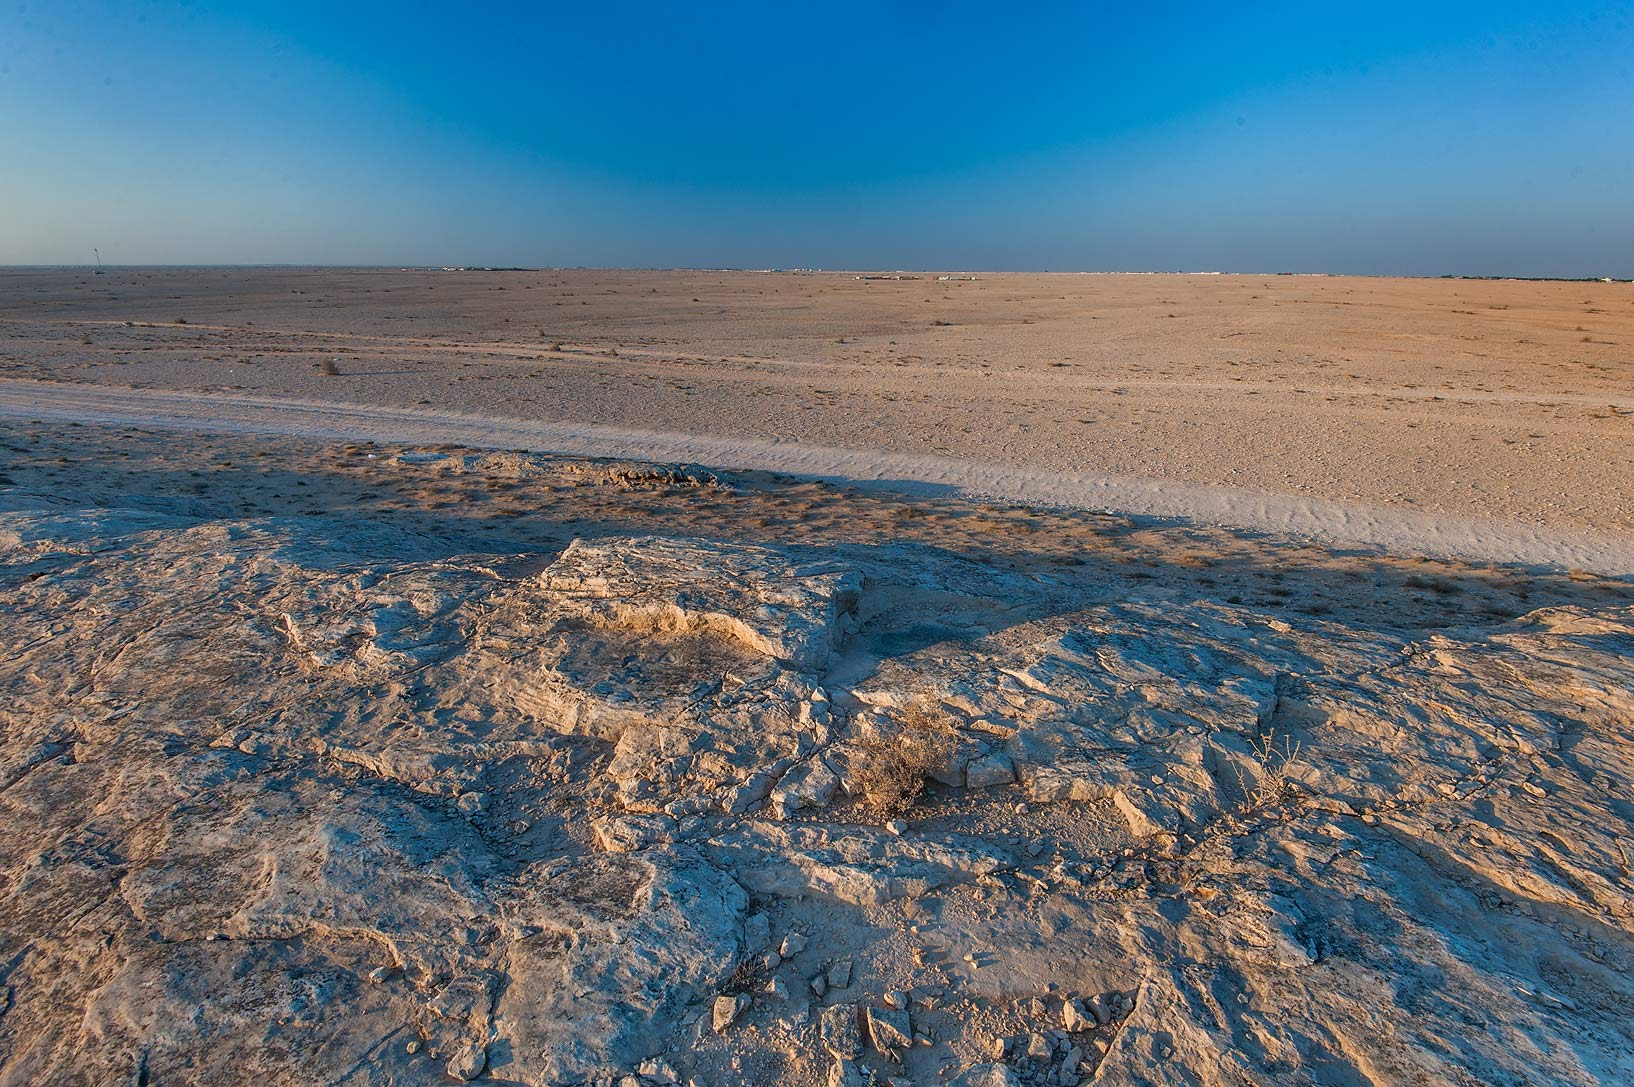 Area of salt marshes (sabkha) from rocky ridge of Jebel Fuwairit. North-eastern Qatar